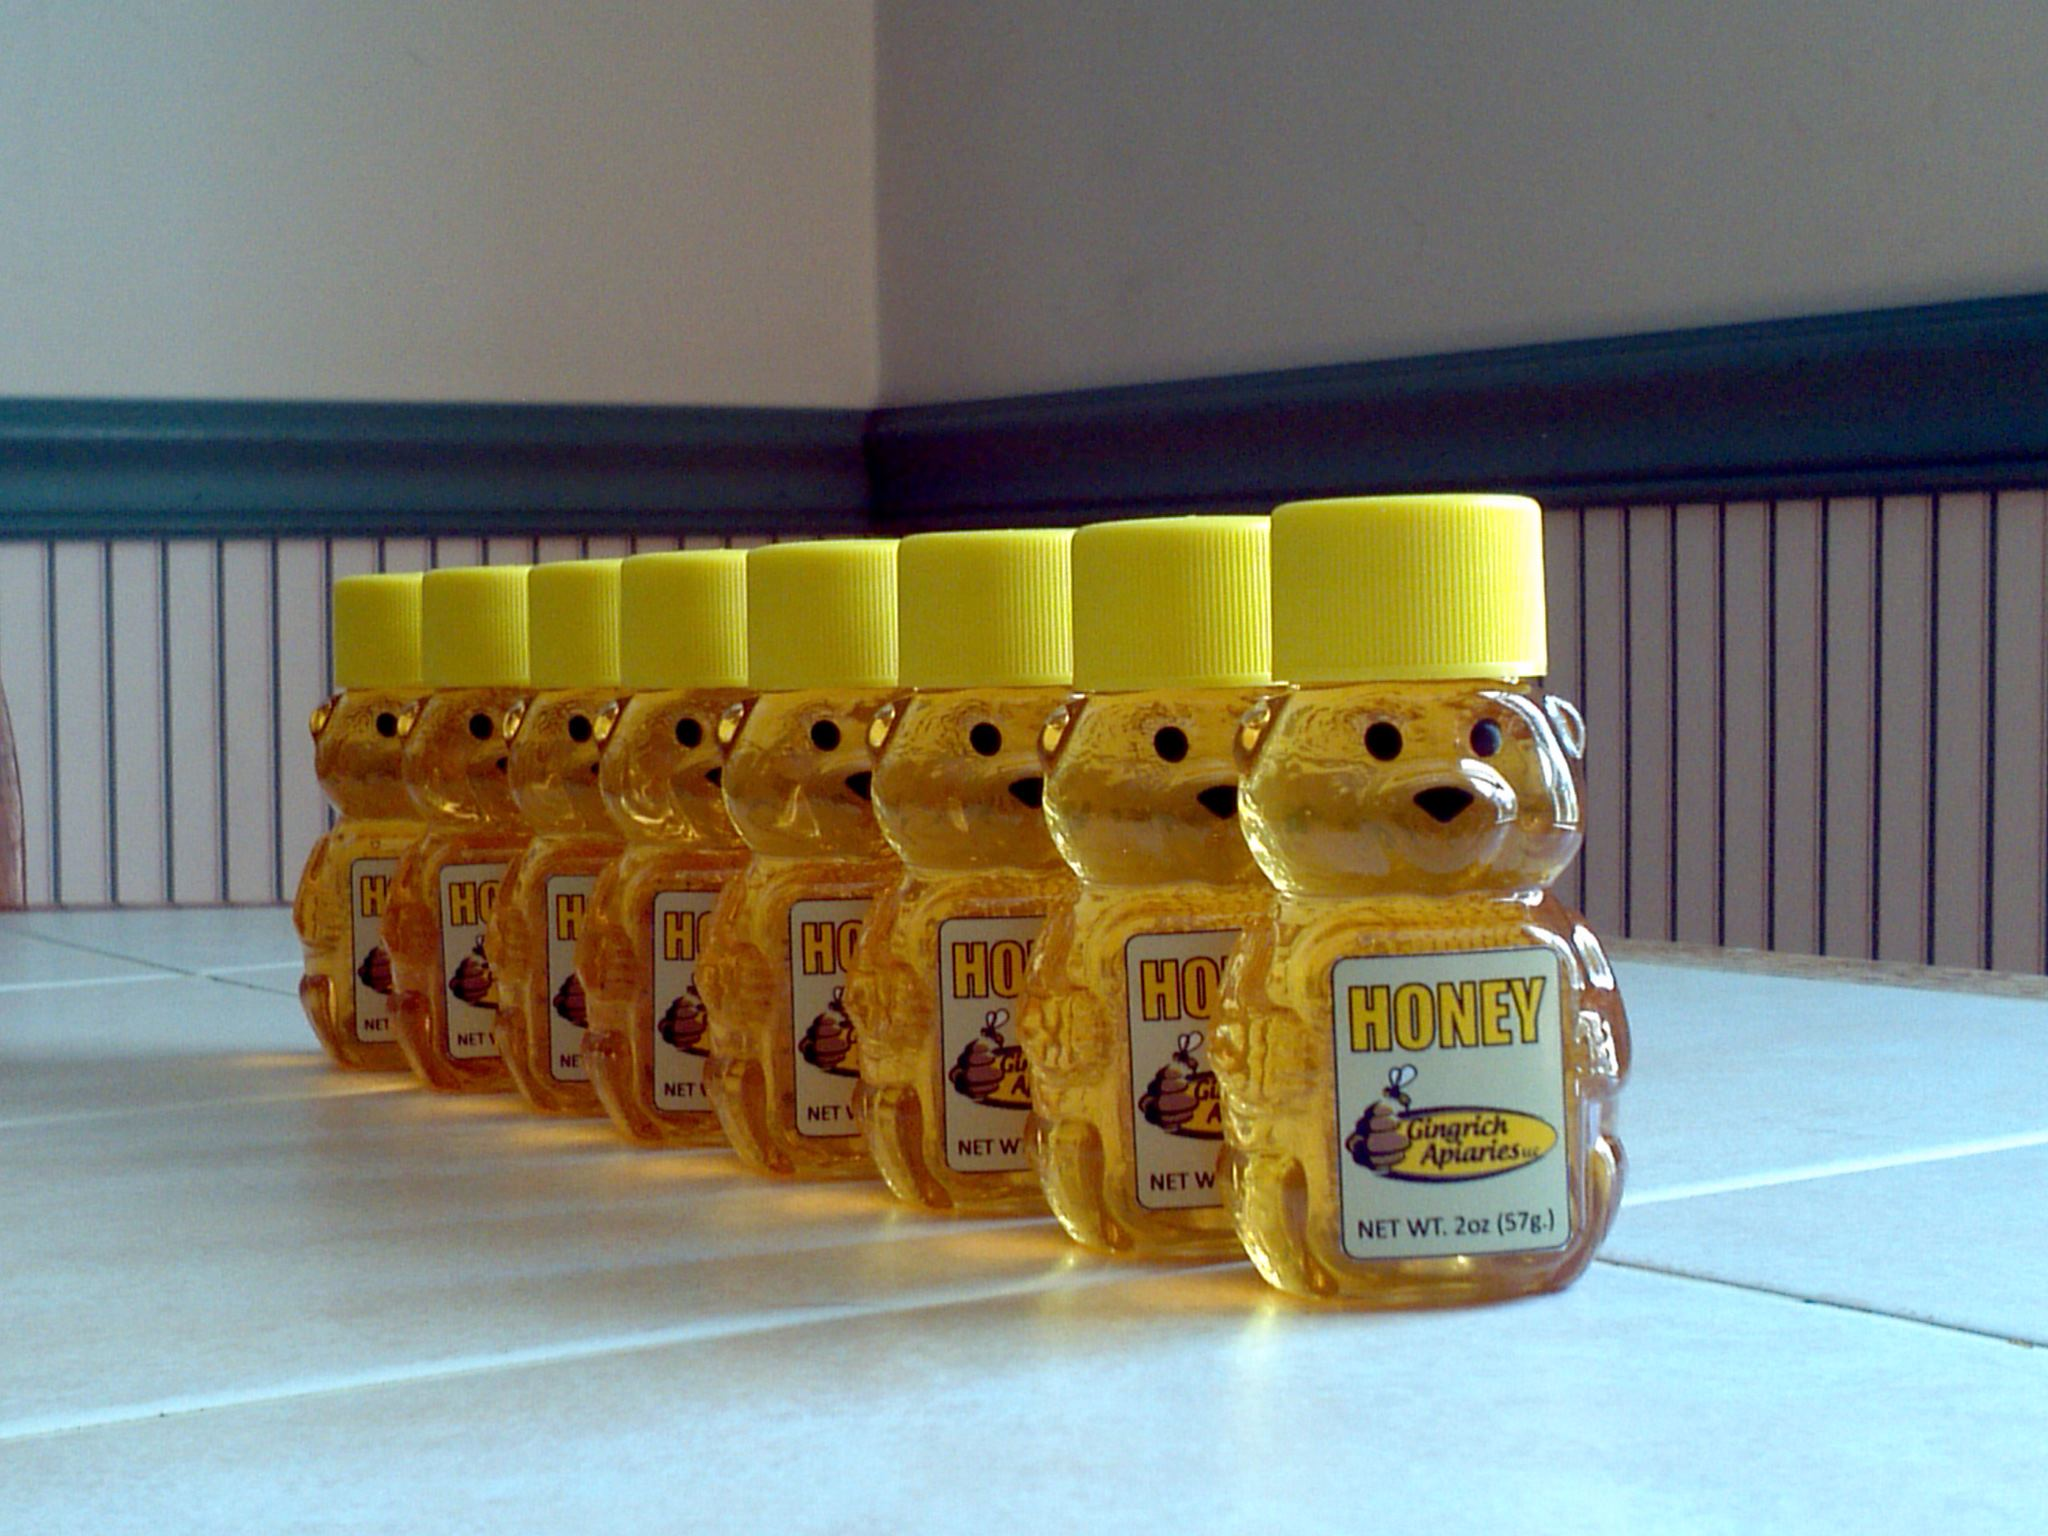 Gingrich Apiaries